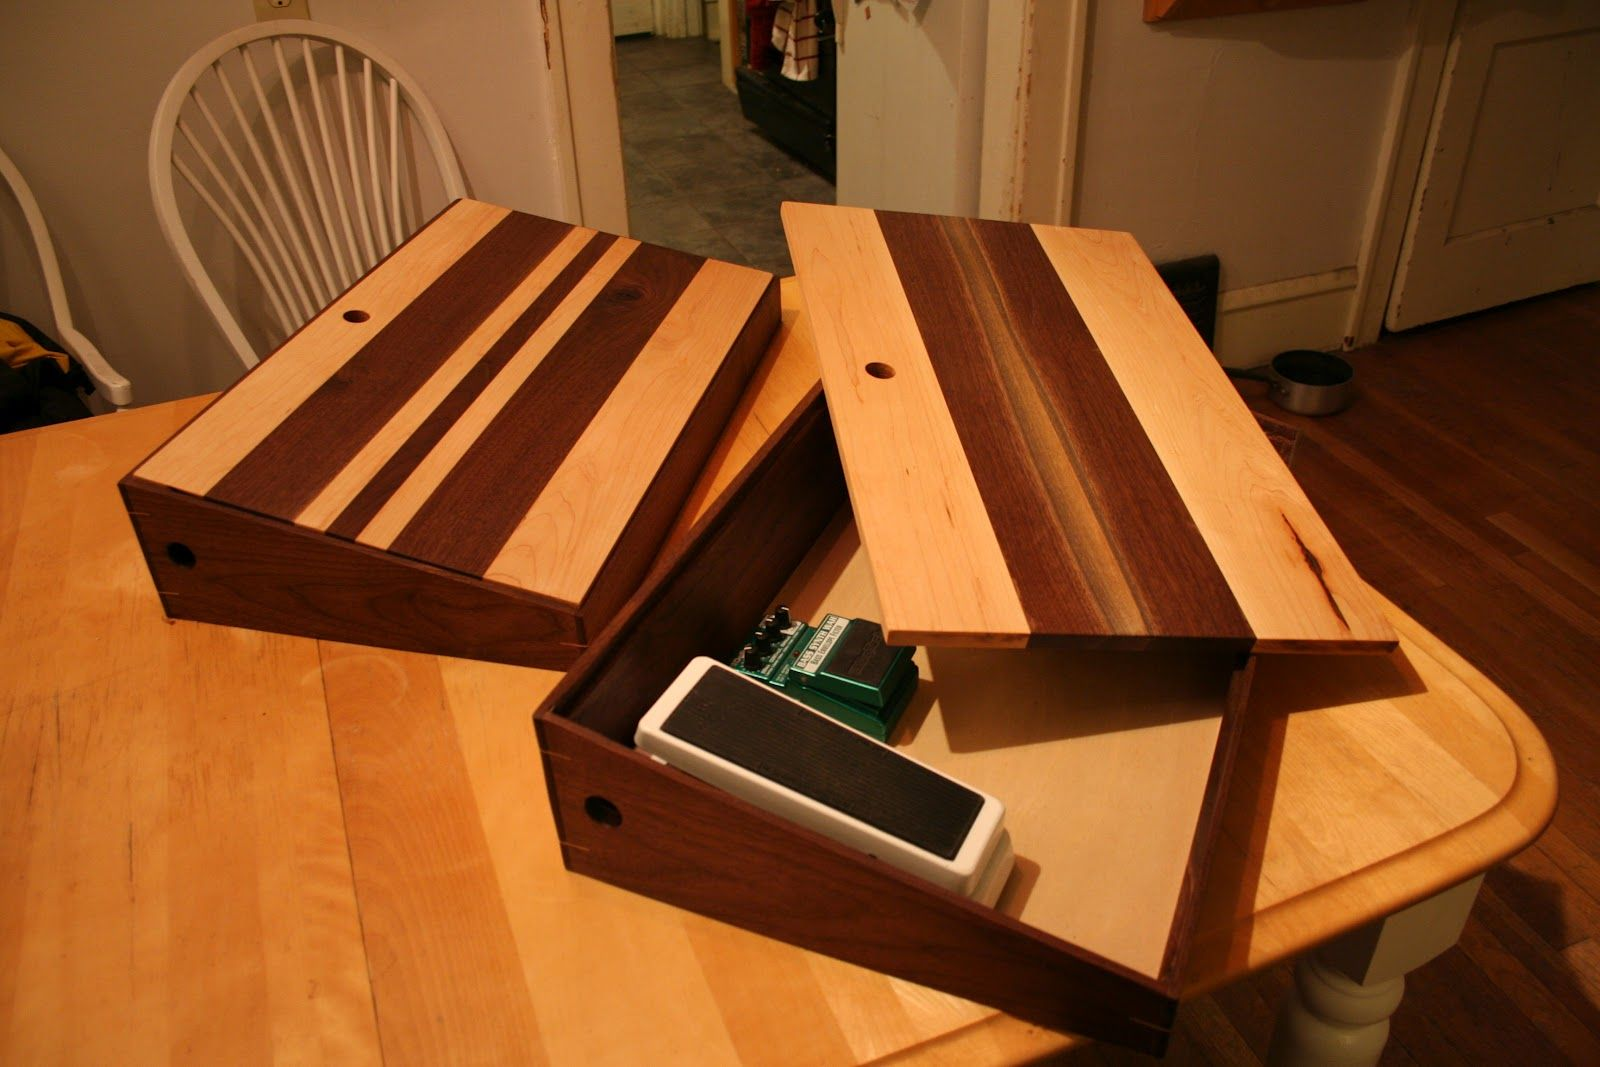 pedal boards matty build this build this pedalboard guitar pedals diy pedalboard. Black Bedroom Furniture Sets. Home Design Ideas